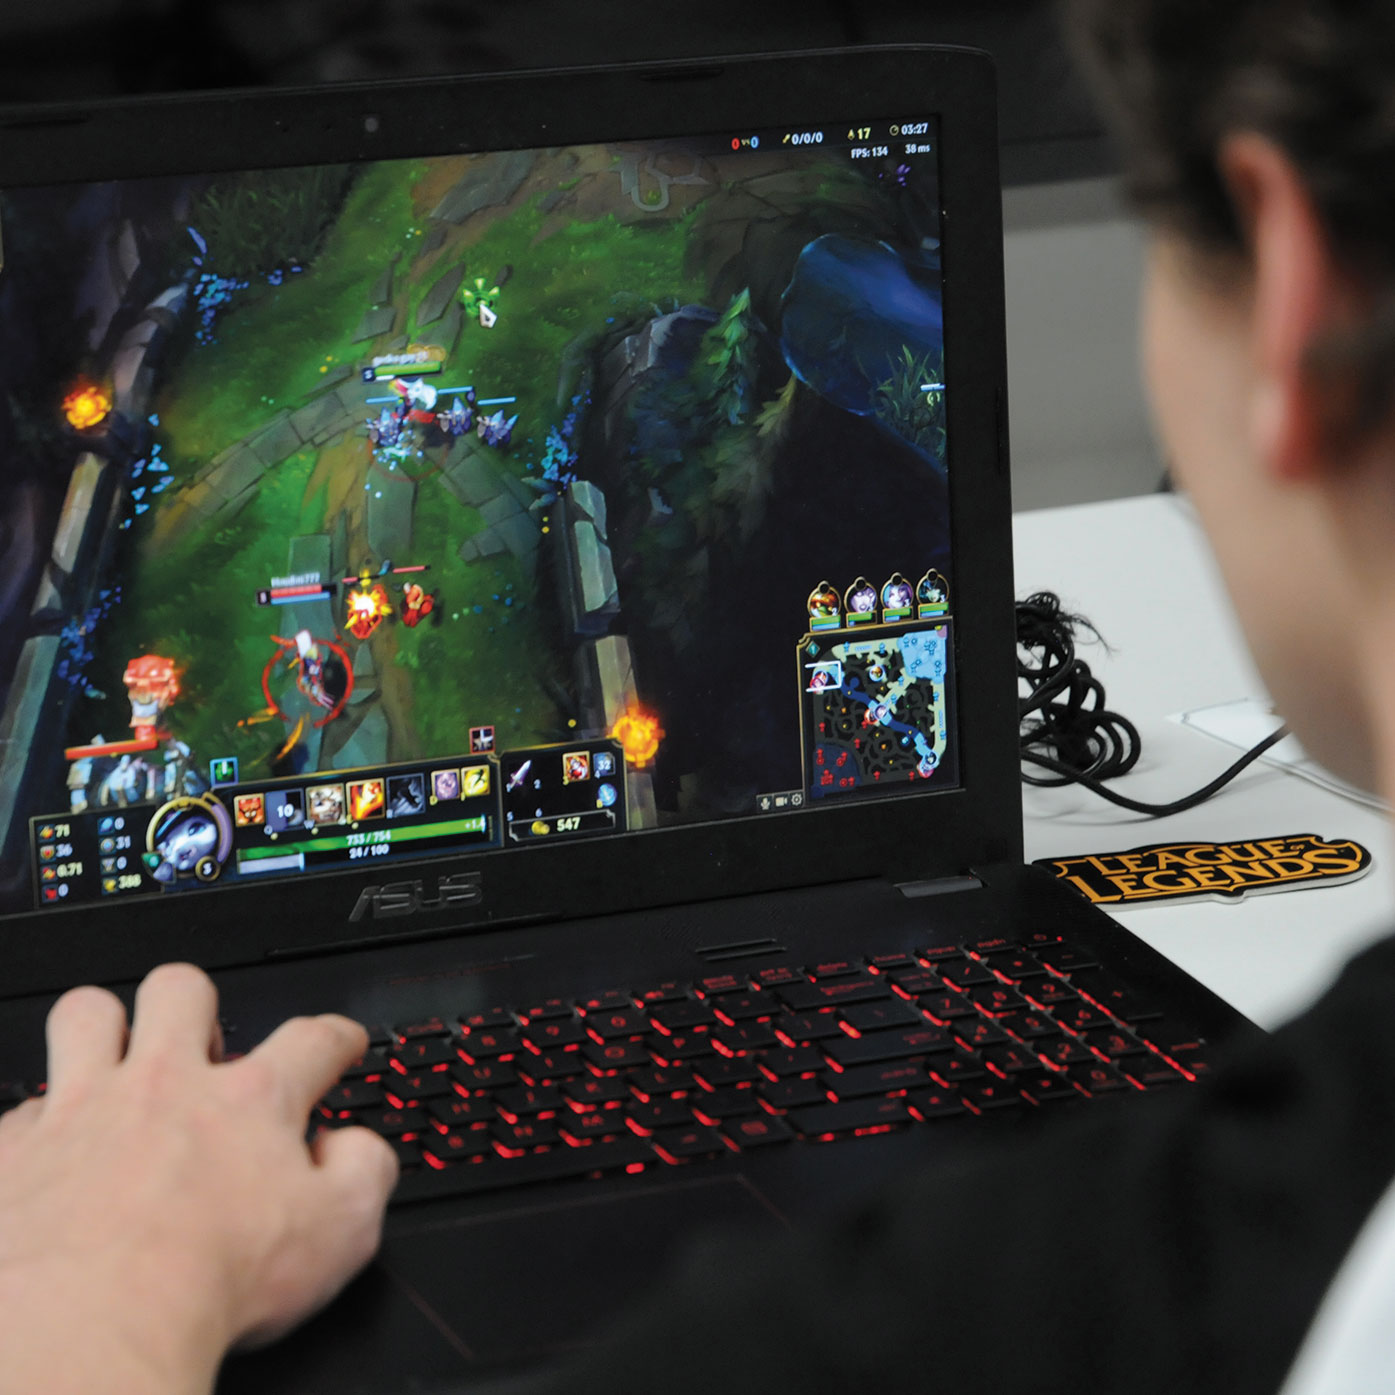 Student playing League of Legends on his laptop